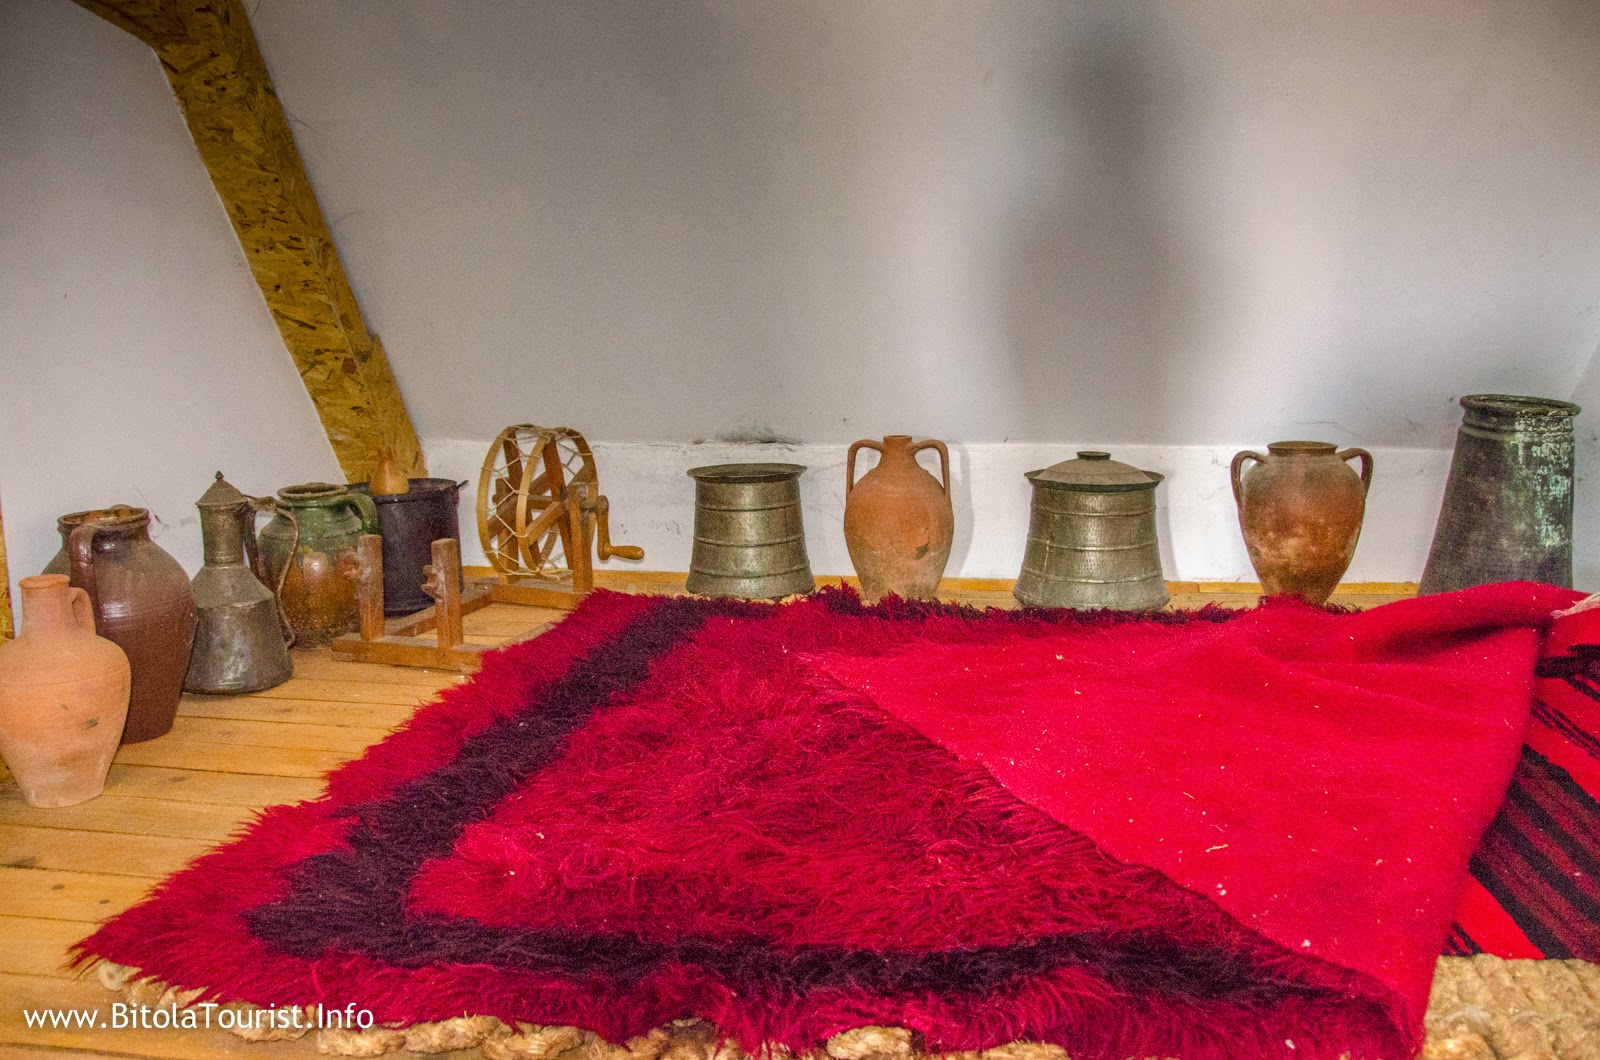 Krklino museum - one of the richest private museums in Macedonia;